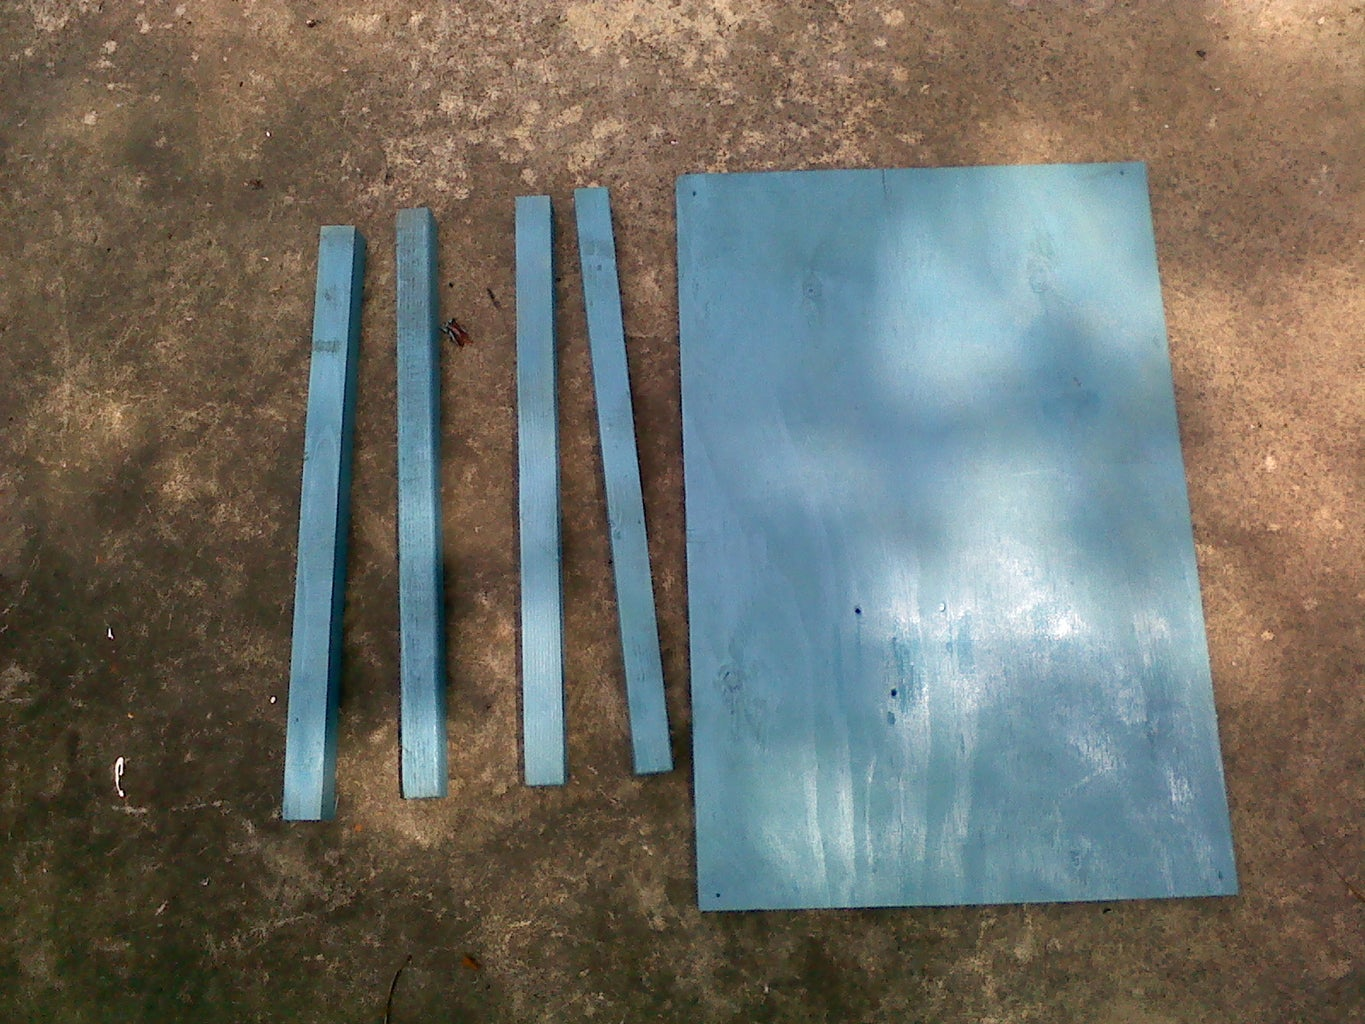 Cutting the Boards for Generator Stand and Table